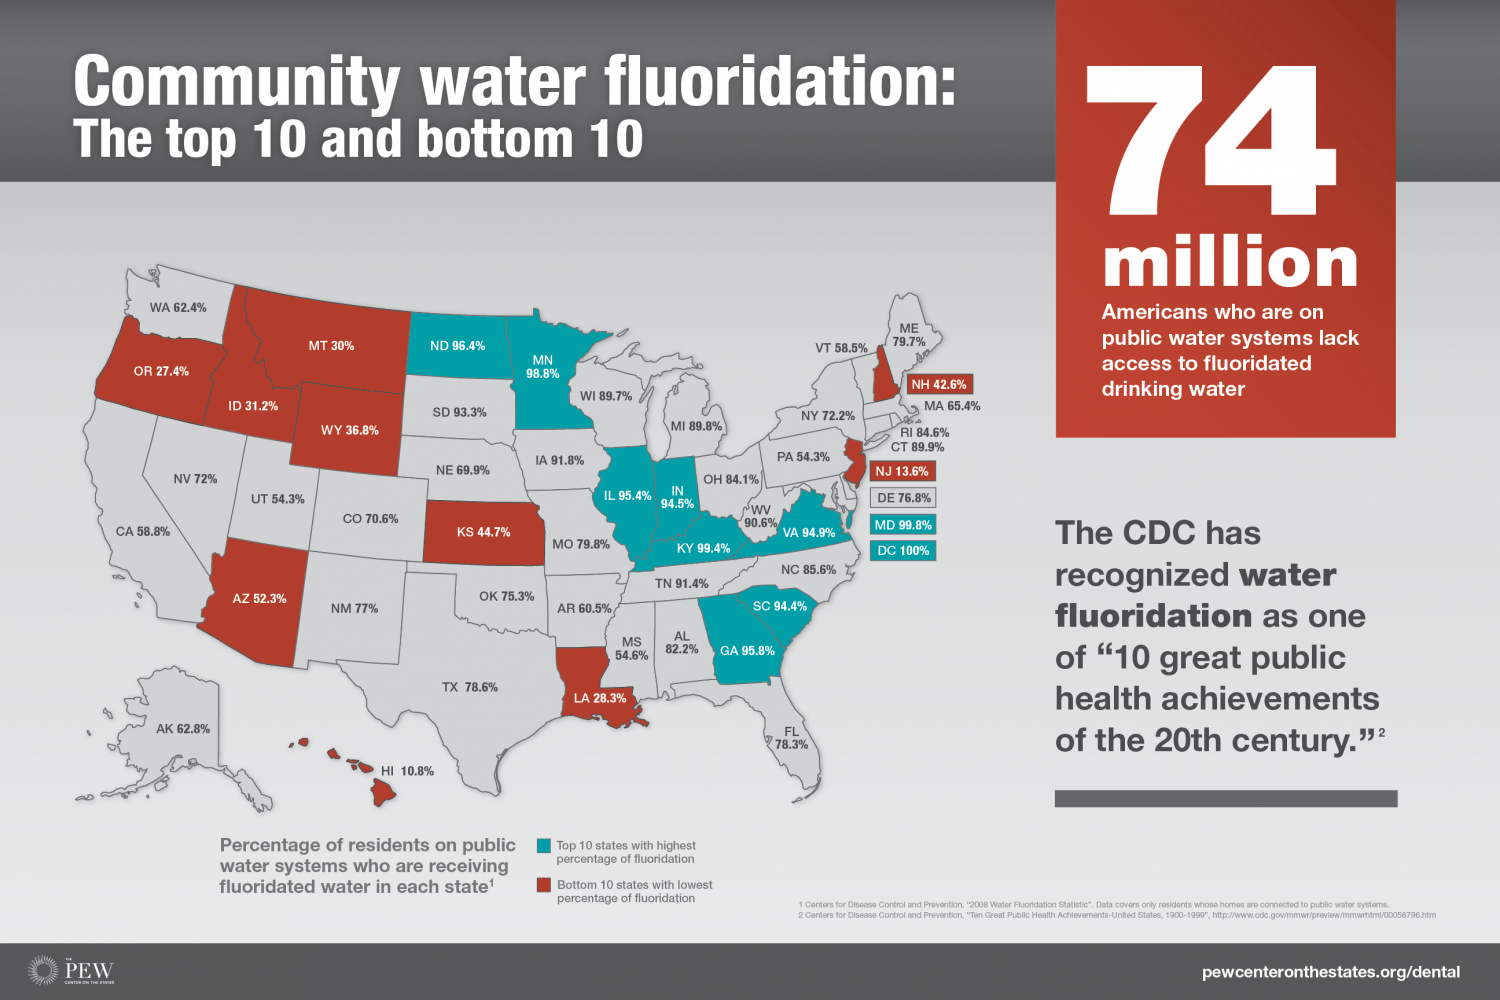 fluoride in water Looking for the best fluoride water filter what should you be looking for find out the types of filters that really work and where to get them.